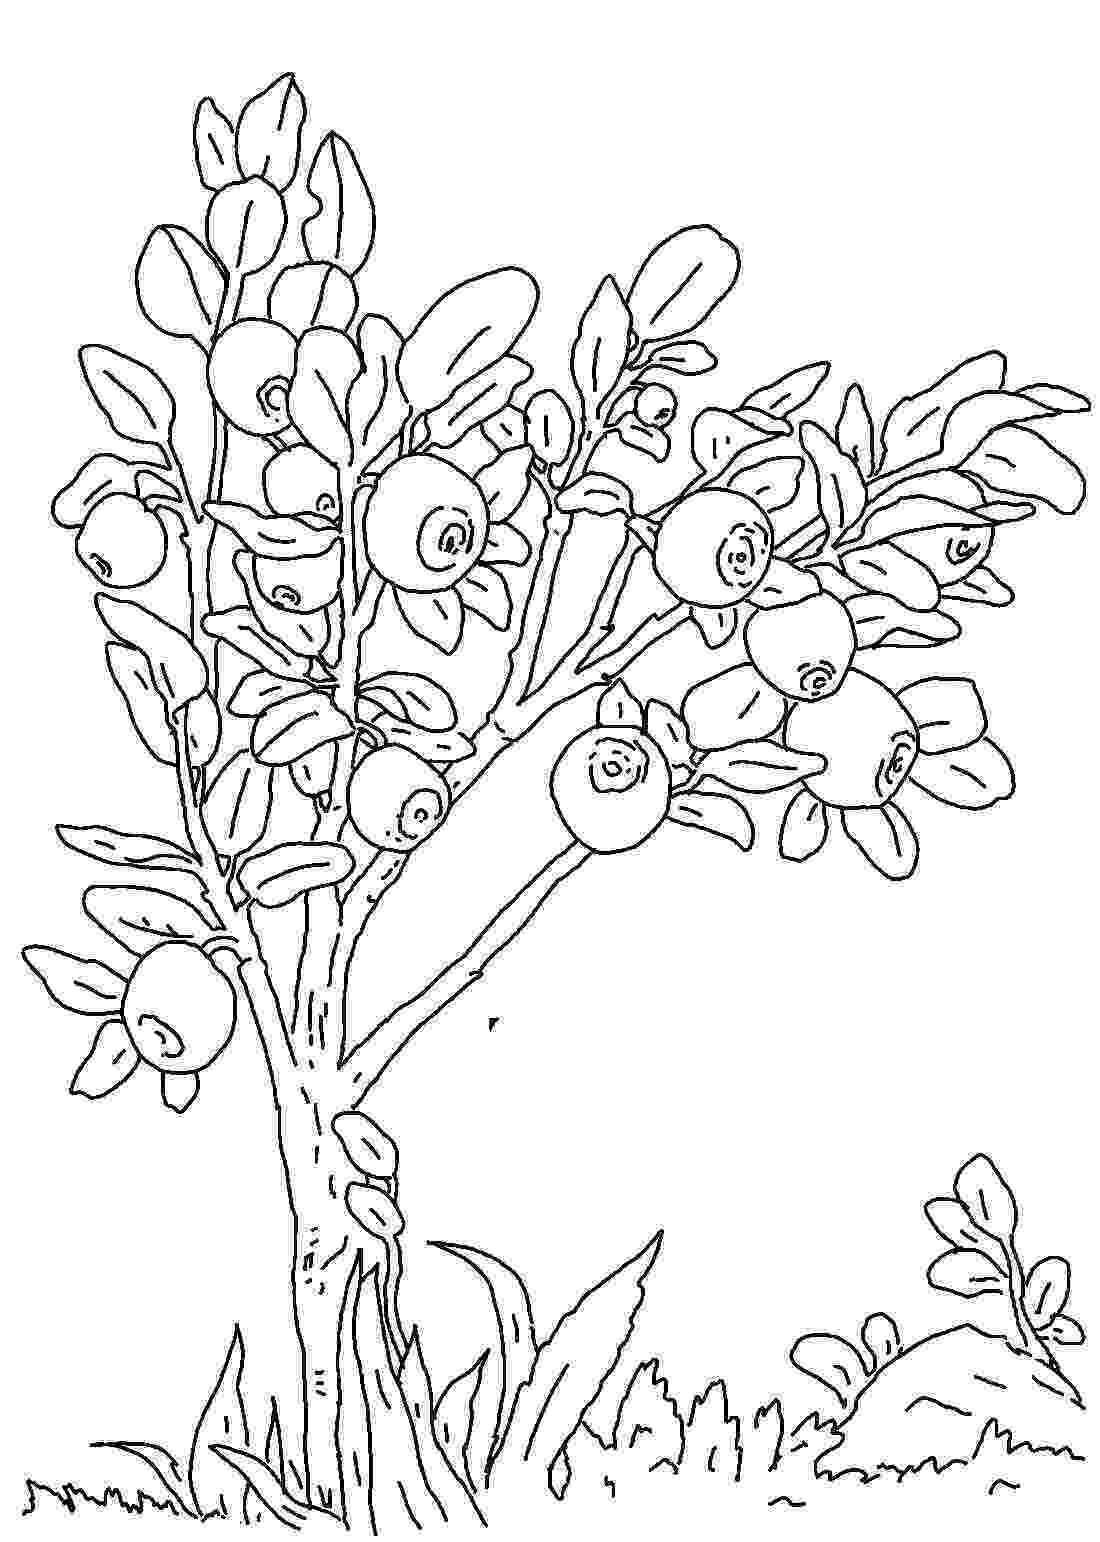 a coloring sheet ponies from ponyville coloring pages free printable a sheet coloring